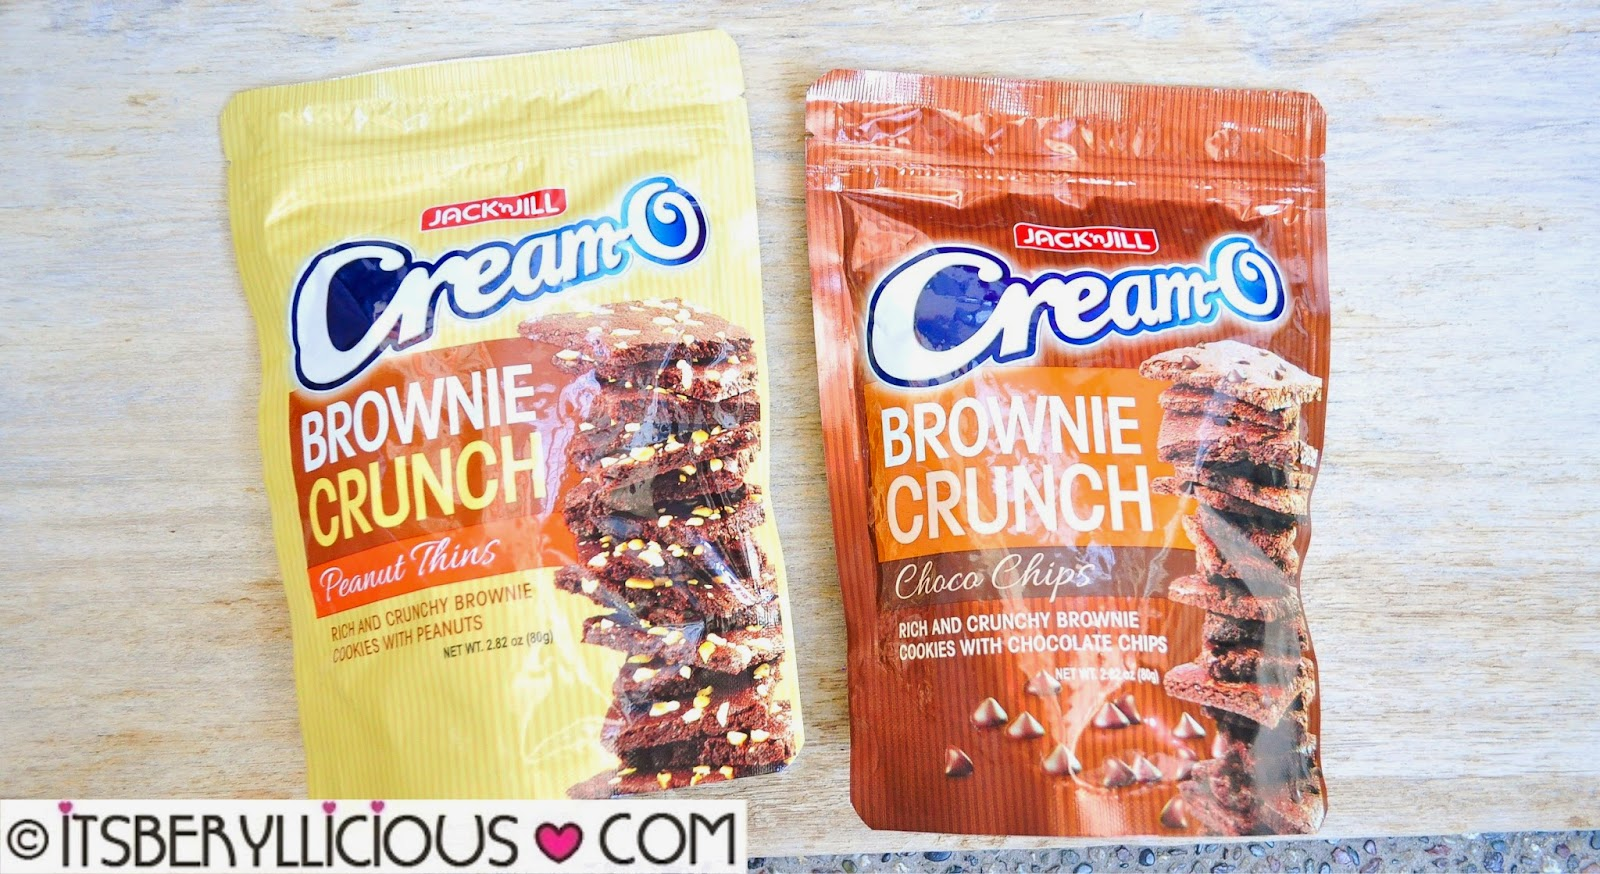 Jack 'n Jill Cream-O Brownie Crunch Peanut Thins and Choco Chips for ...